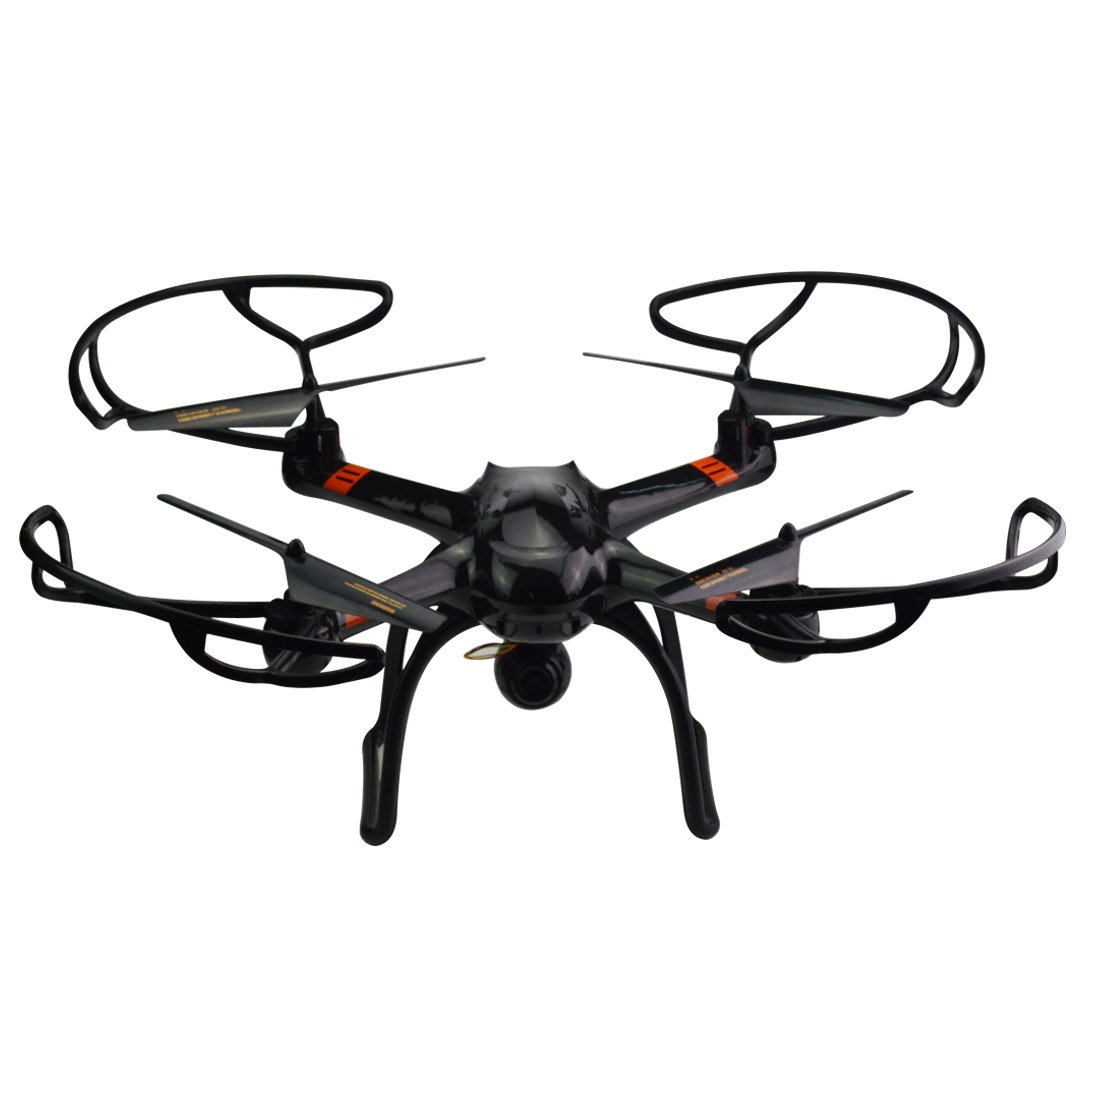 SOWOFA 23.5inch 6 Axis Big Drone